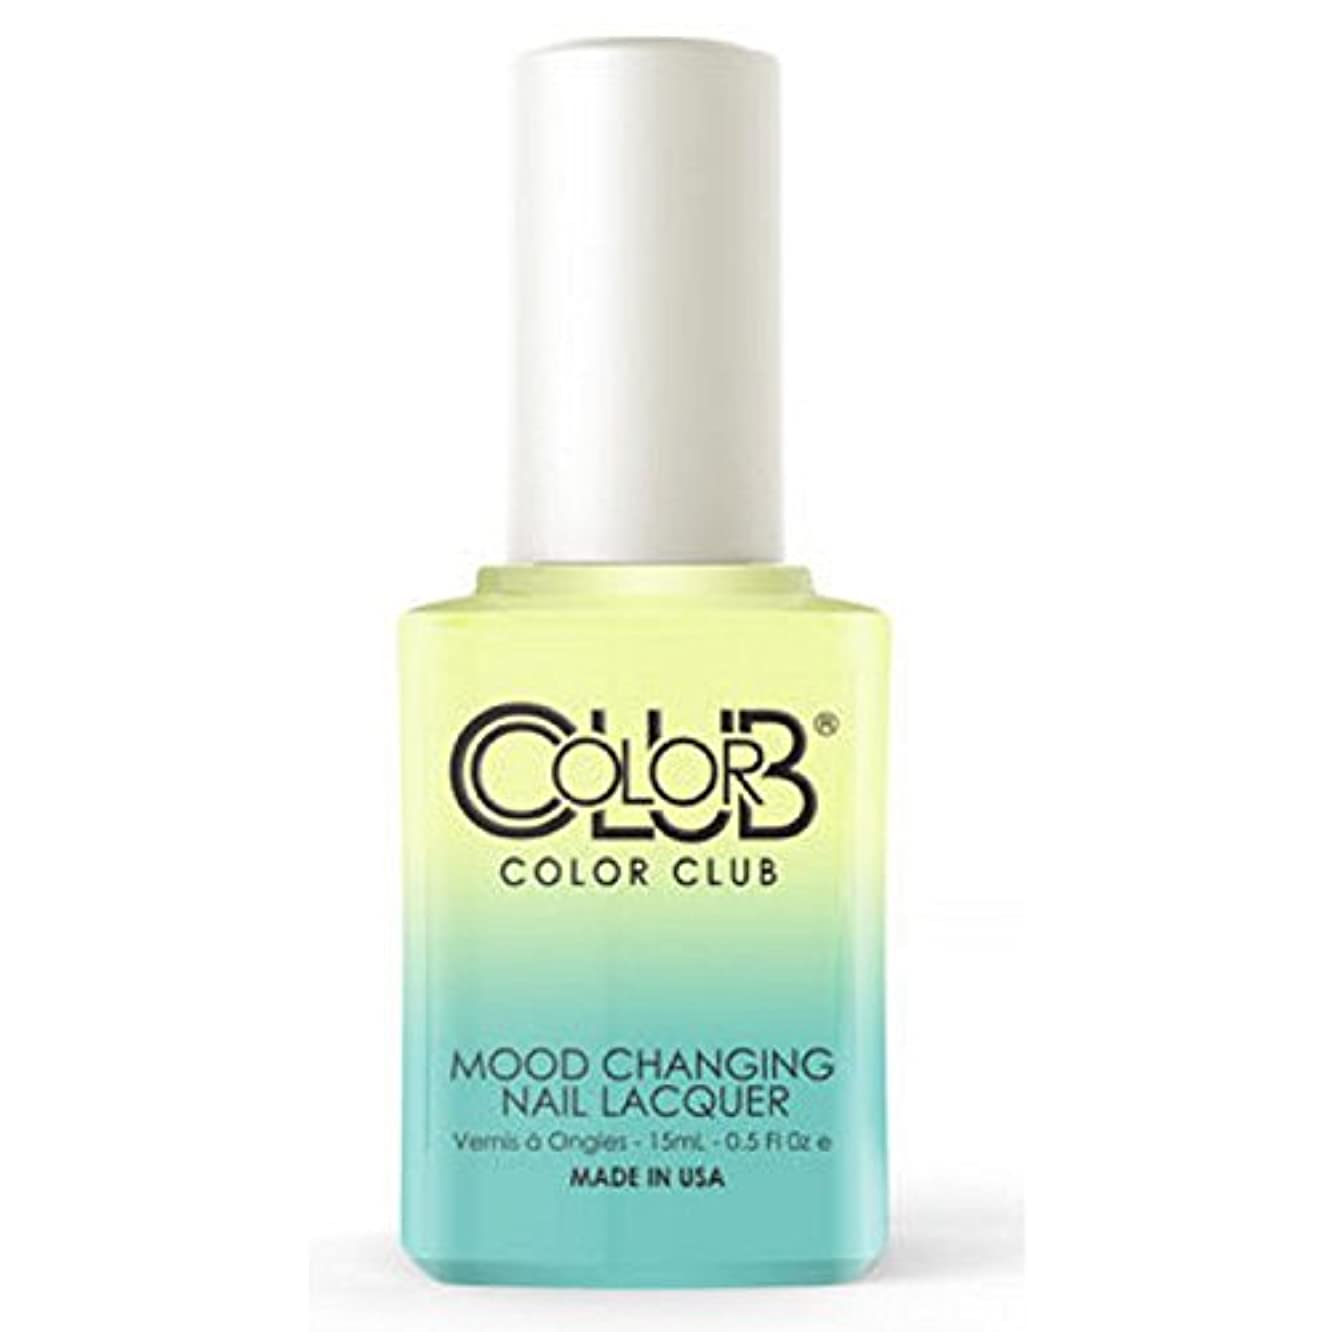 マーキーチップ明示的にColor Club Mood Changing Nail Lacquer - Shine Theory - 15 mL / 0.5 fl oz